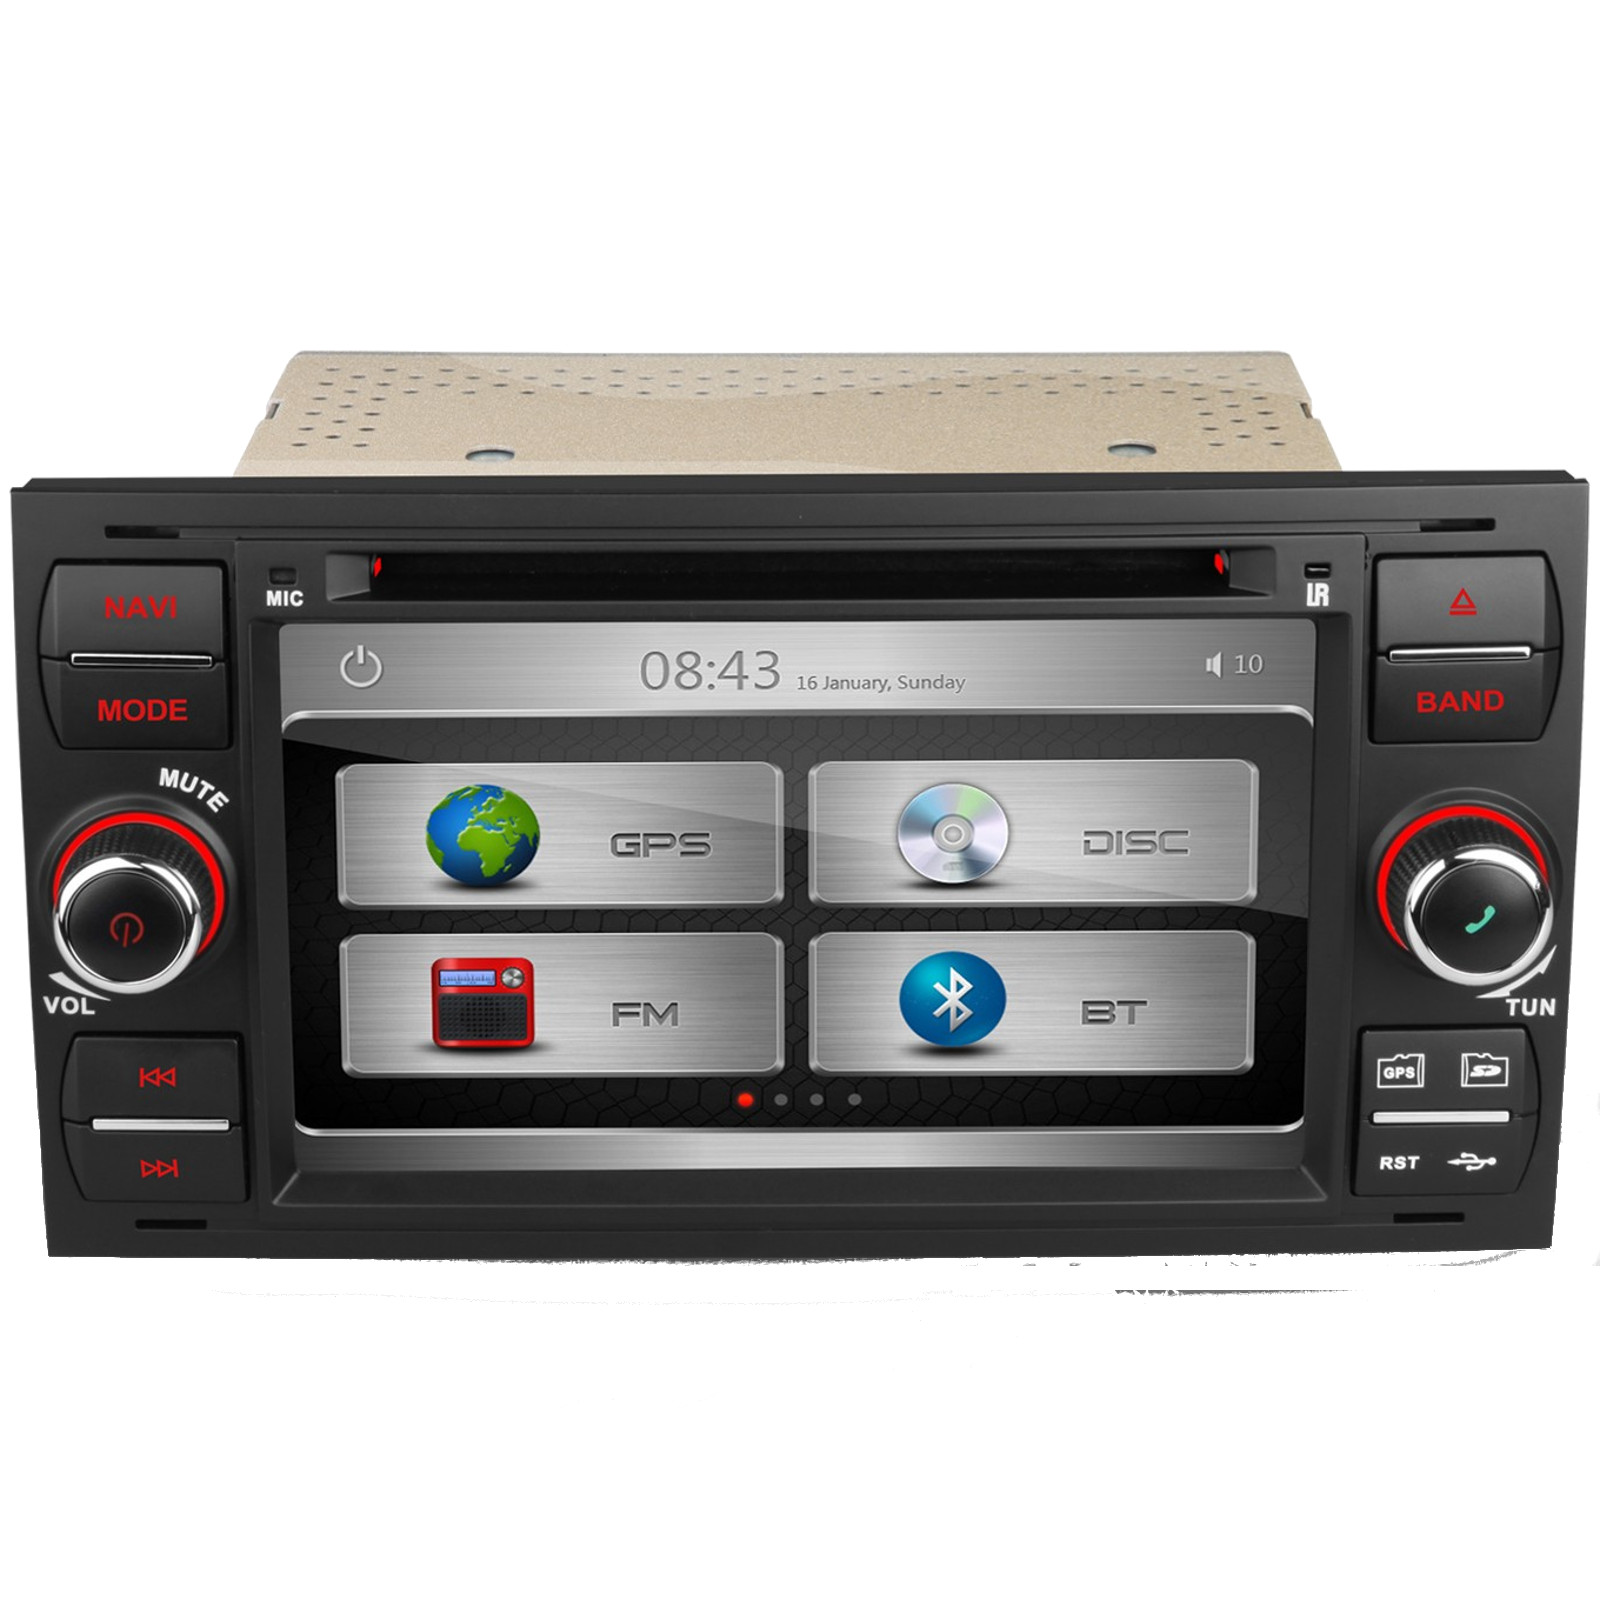 ford fiesta mk6 transit mk7 dab digital radio kudos satnav. Black Bedroom Furniture Sets. Home Design Ideas